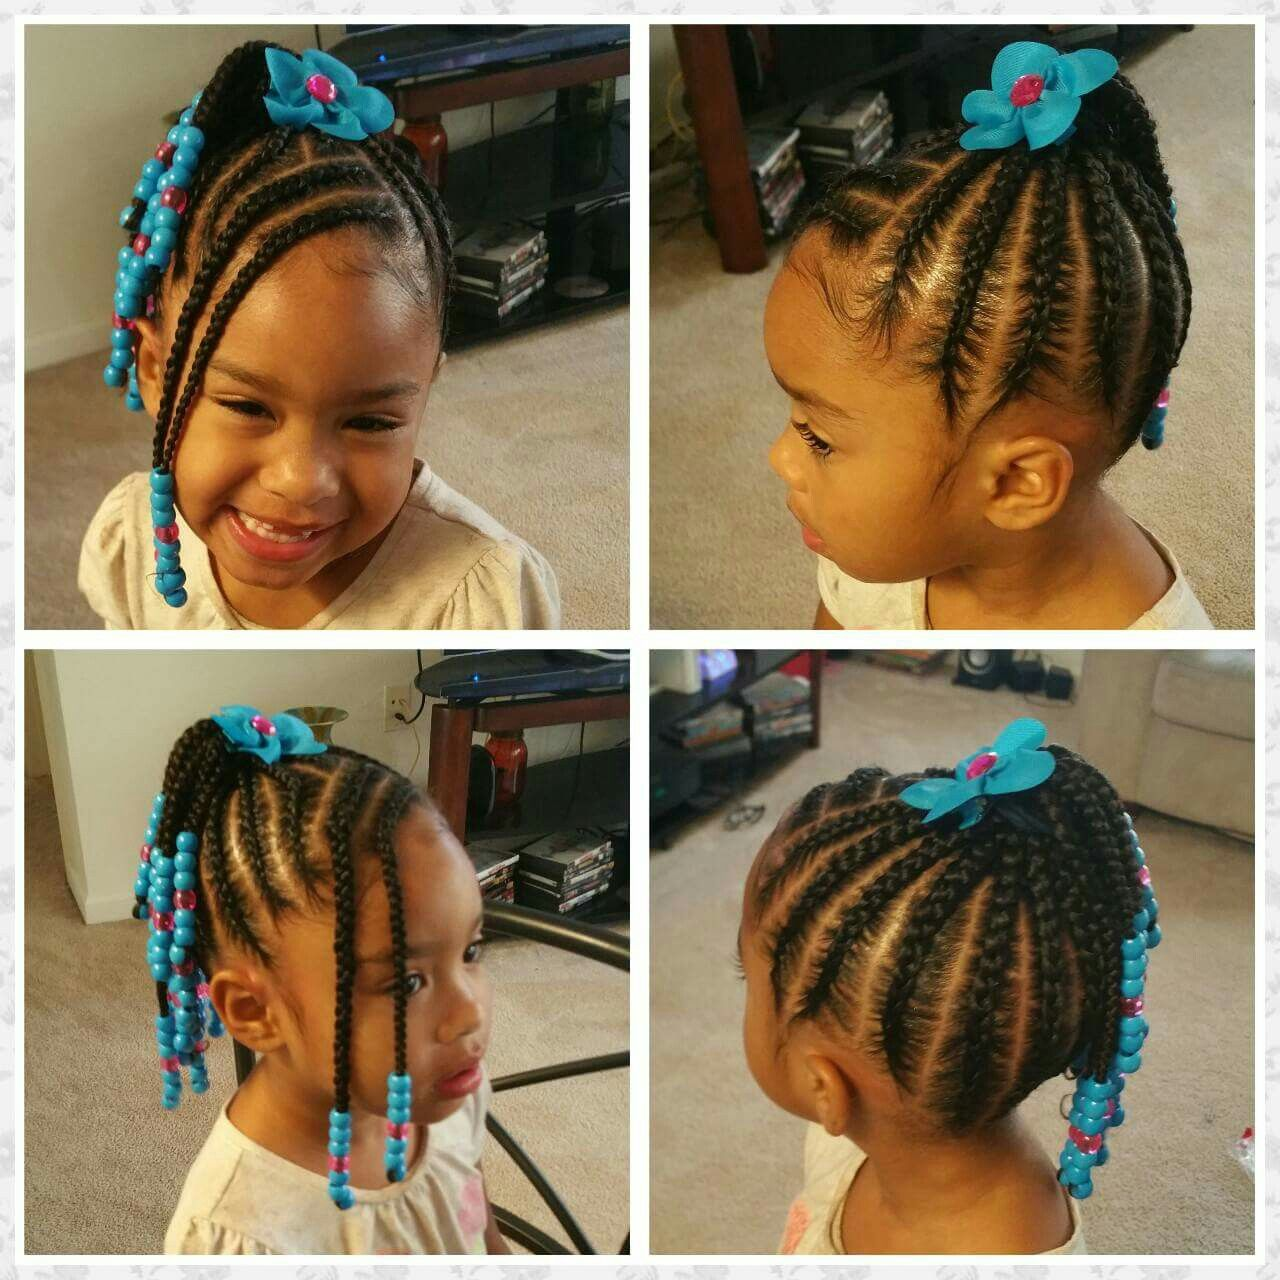 Beautiful Braided Childs Hair Style With Braided Bangs Kids Braided Hairstyles Hair Styles Kids Hairstyles